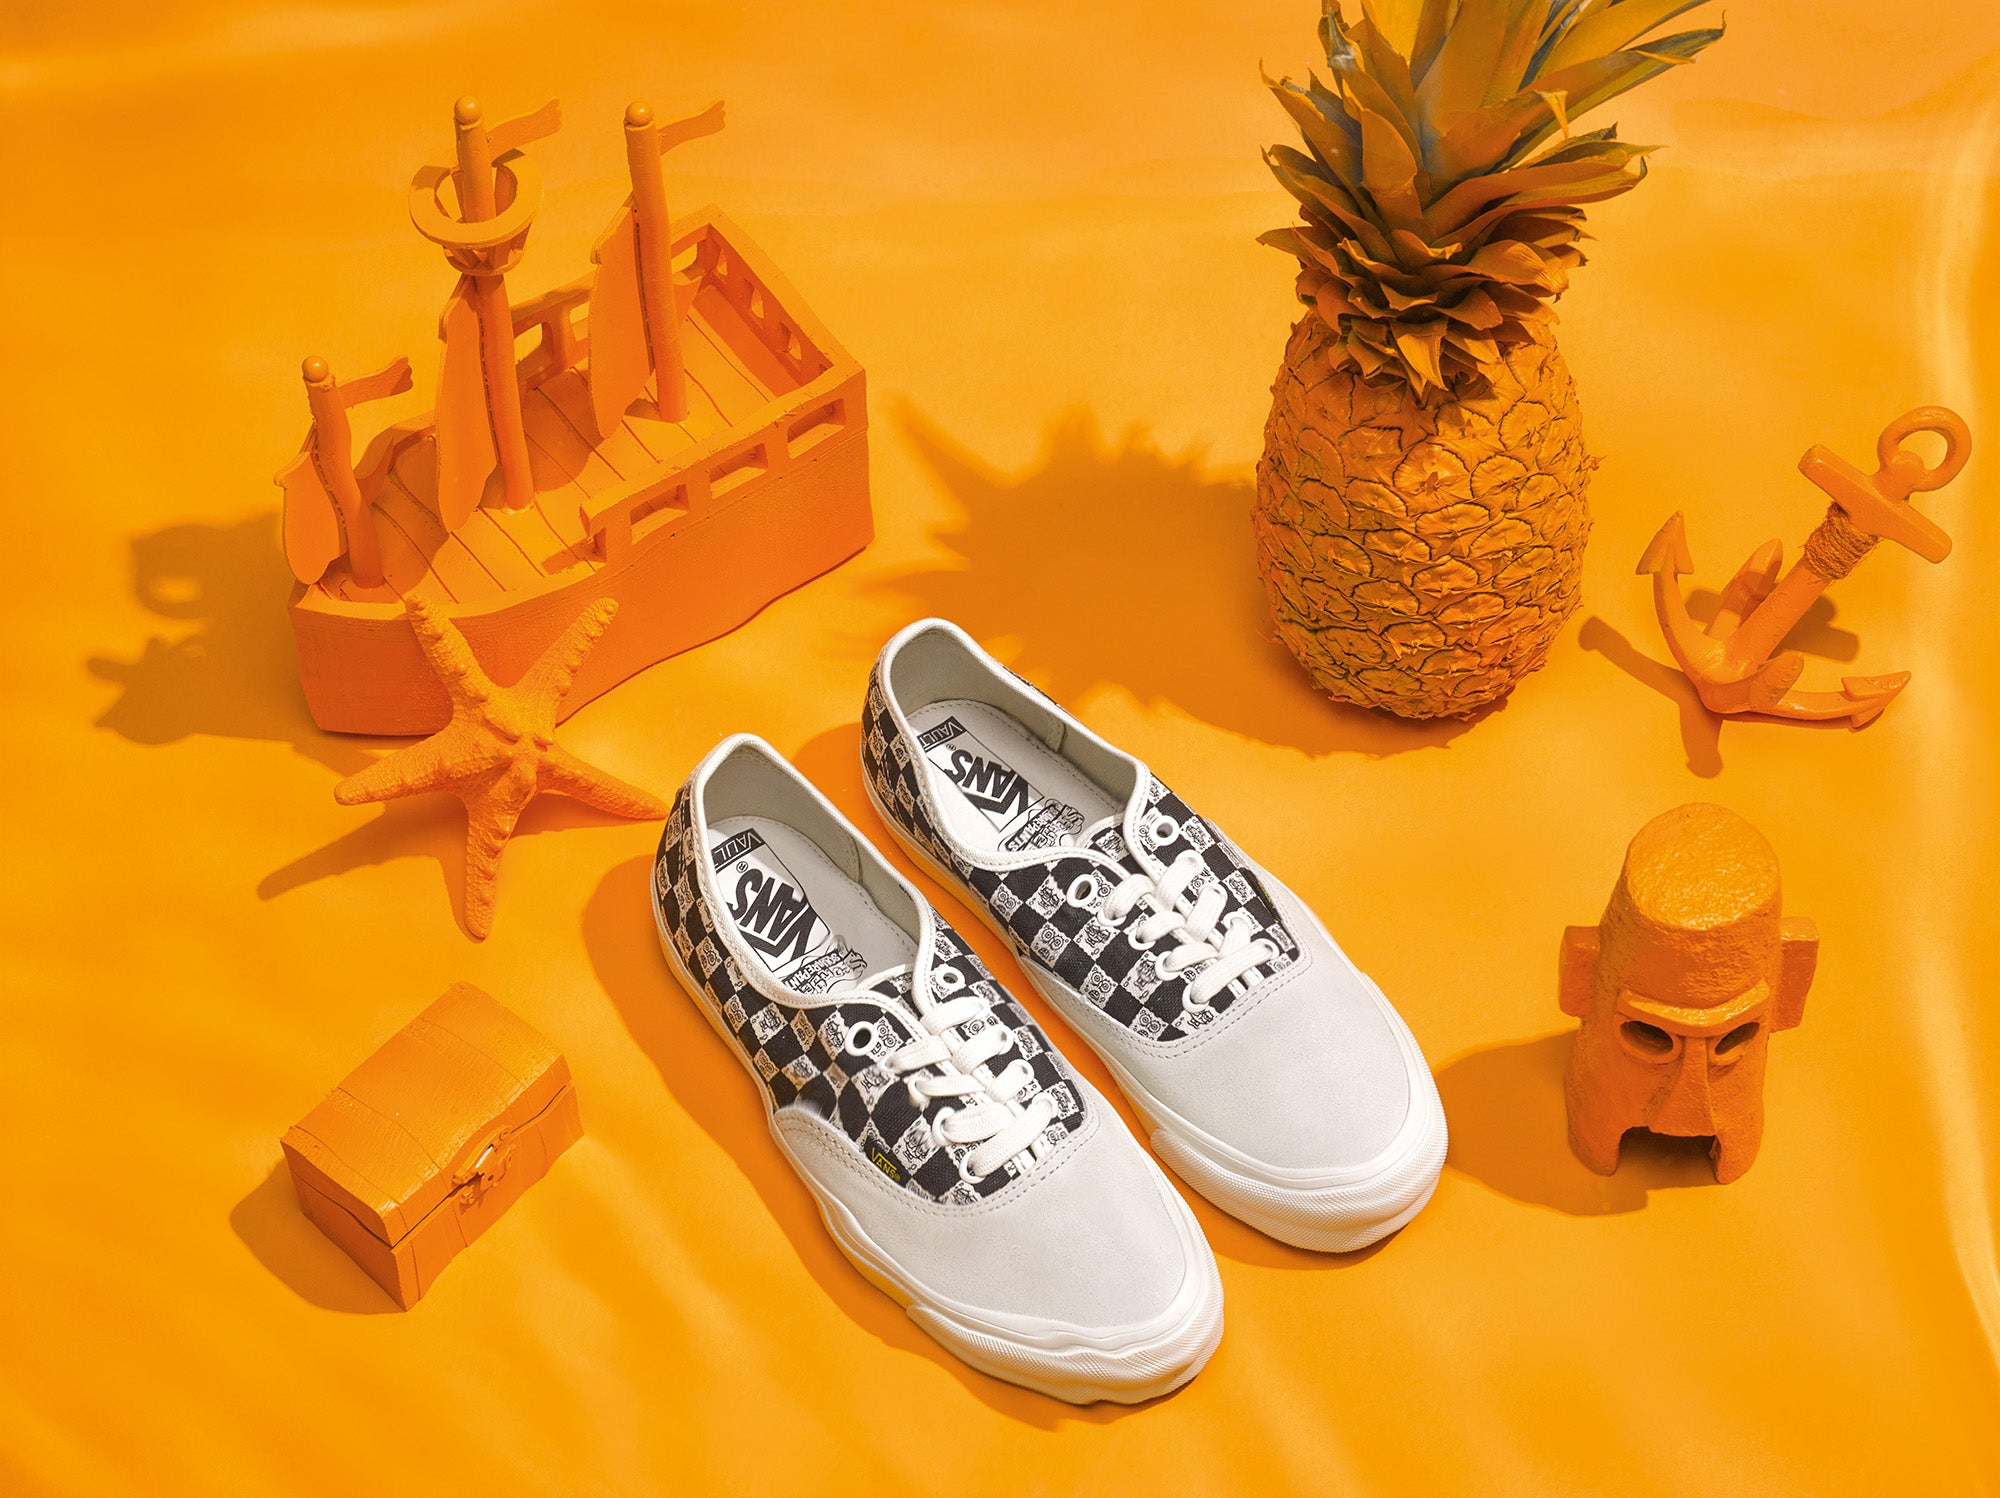 abf77b659b Vans Vault UA OG Authentic LX x Spongebob V00UDDQ6Q (SPONGEBOB) YELLOW  BLACK Price  £59.00. Launch  Saturday 24th February  ONLINE 00 01GMT and  IN-STORE 10  ...